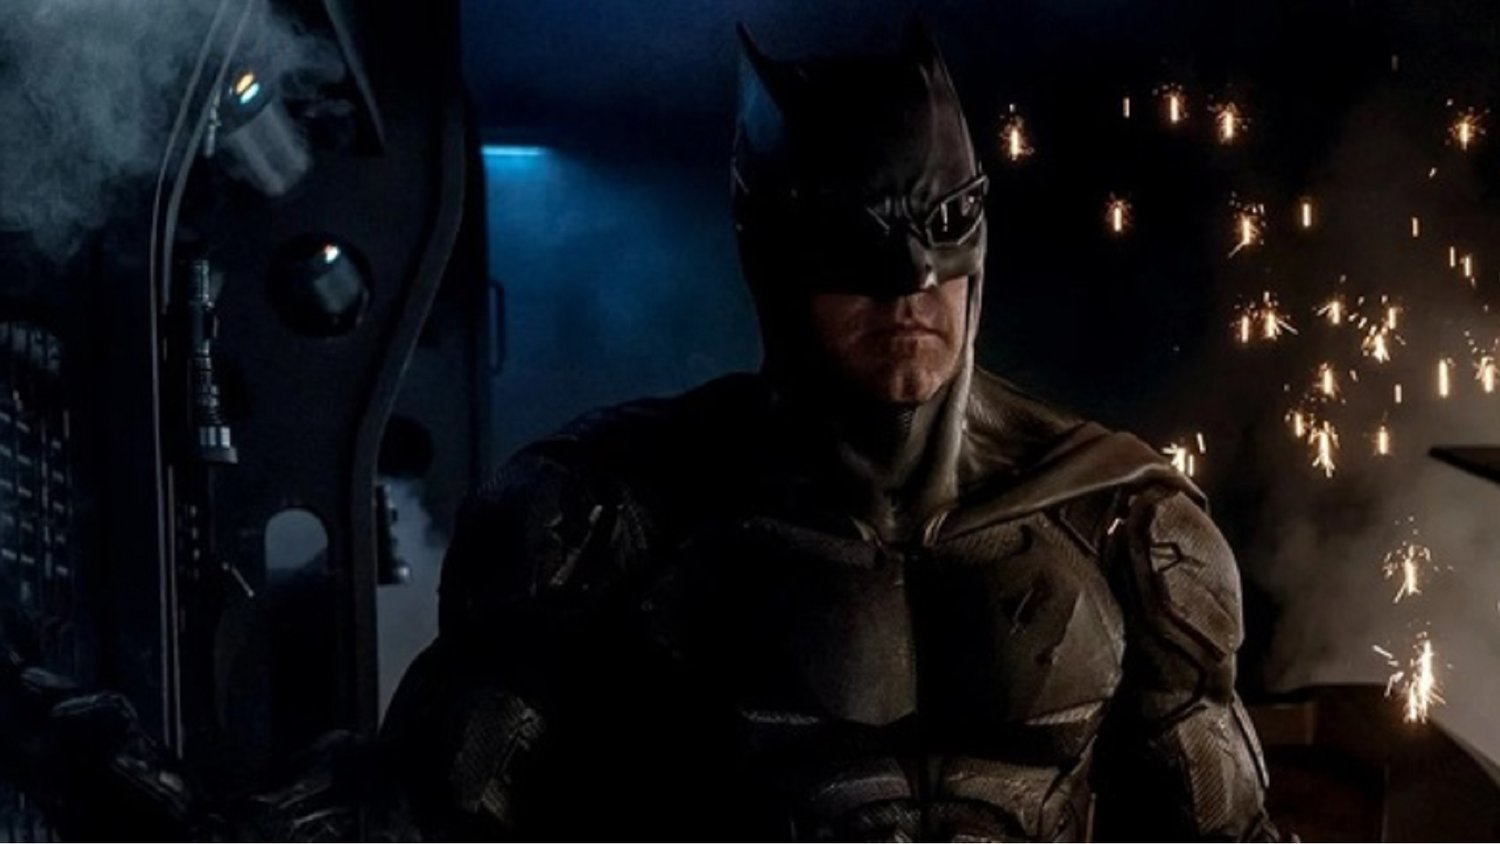 Get a Good Look at Batman's Tactical Suit in JUSTICE LEAGUE